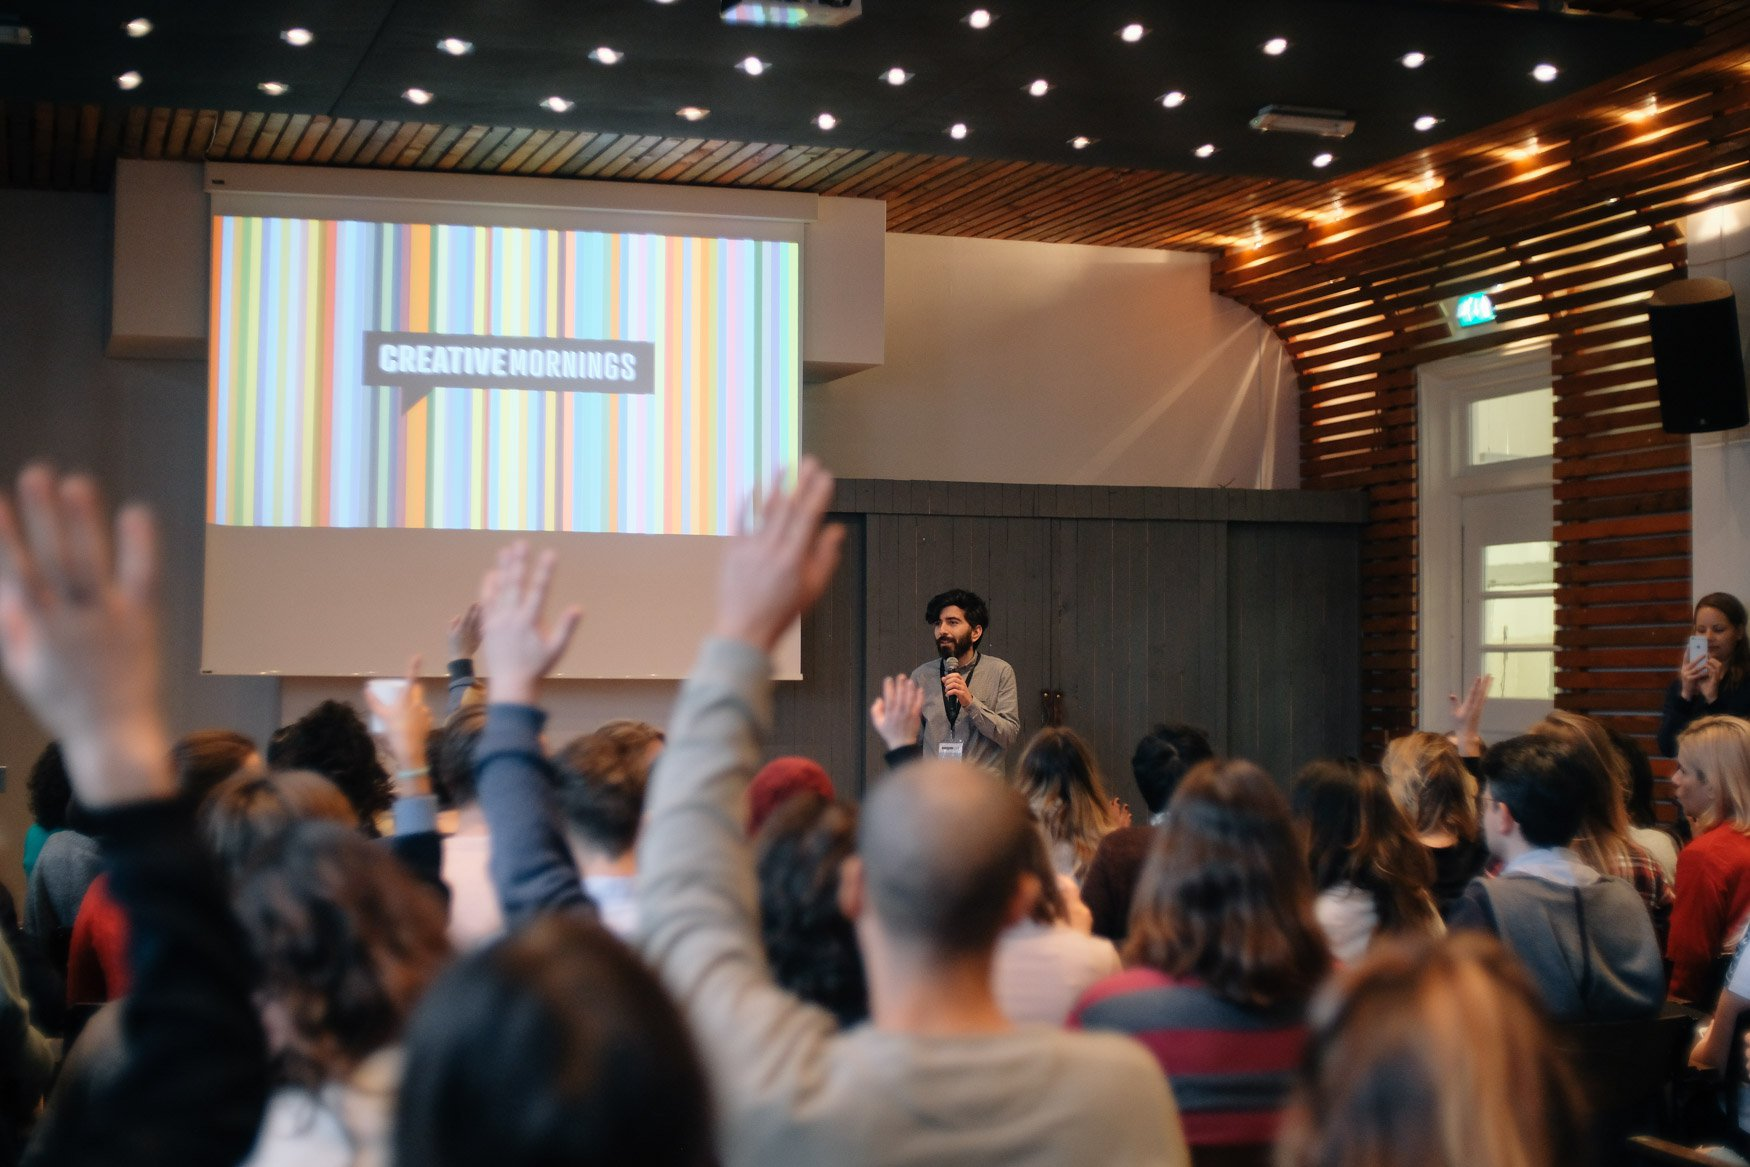 CreativeMornings Amsterdam